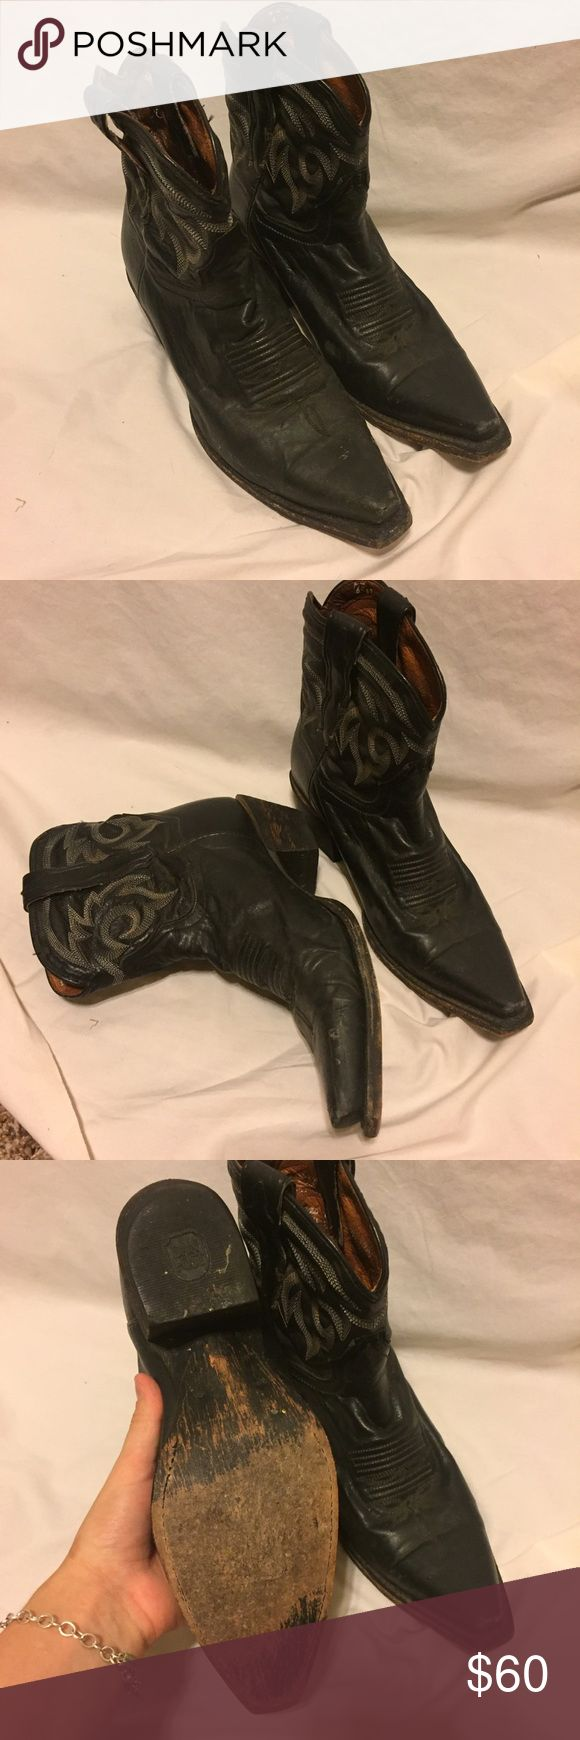 VTG leather Dan Post Boots Super cute and comfortable! still in good condition! Dan Post Shoes Ankle Boots & Booties